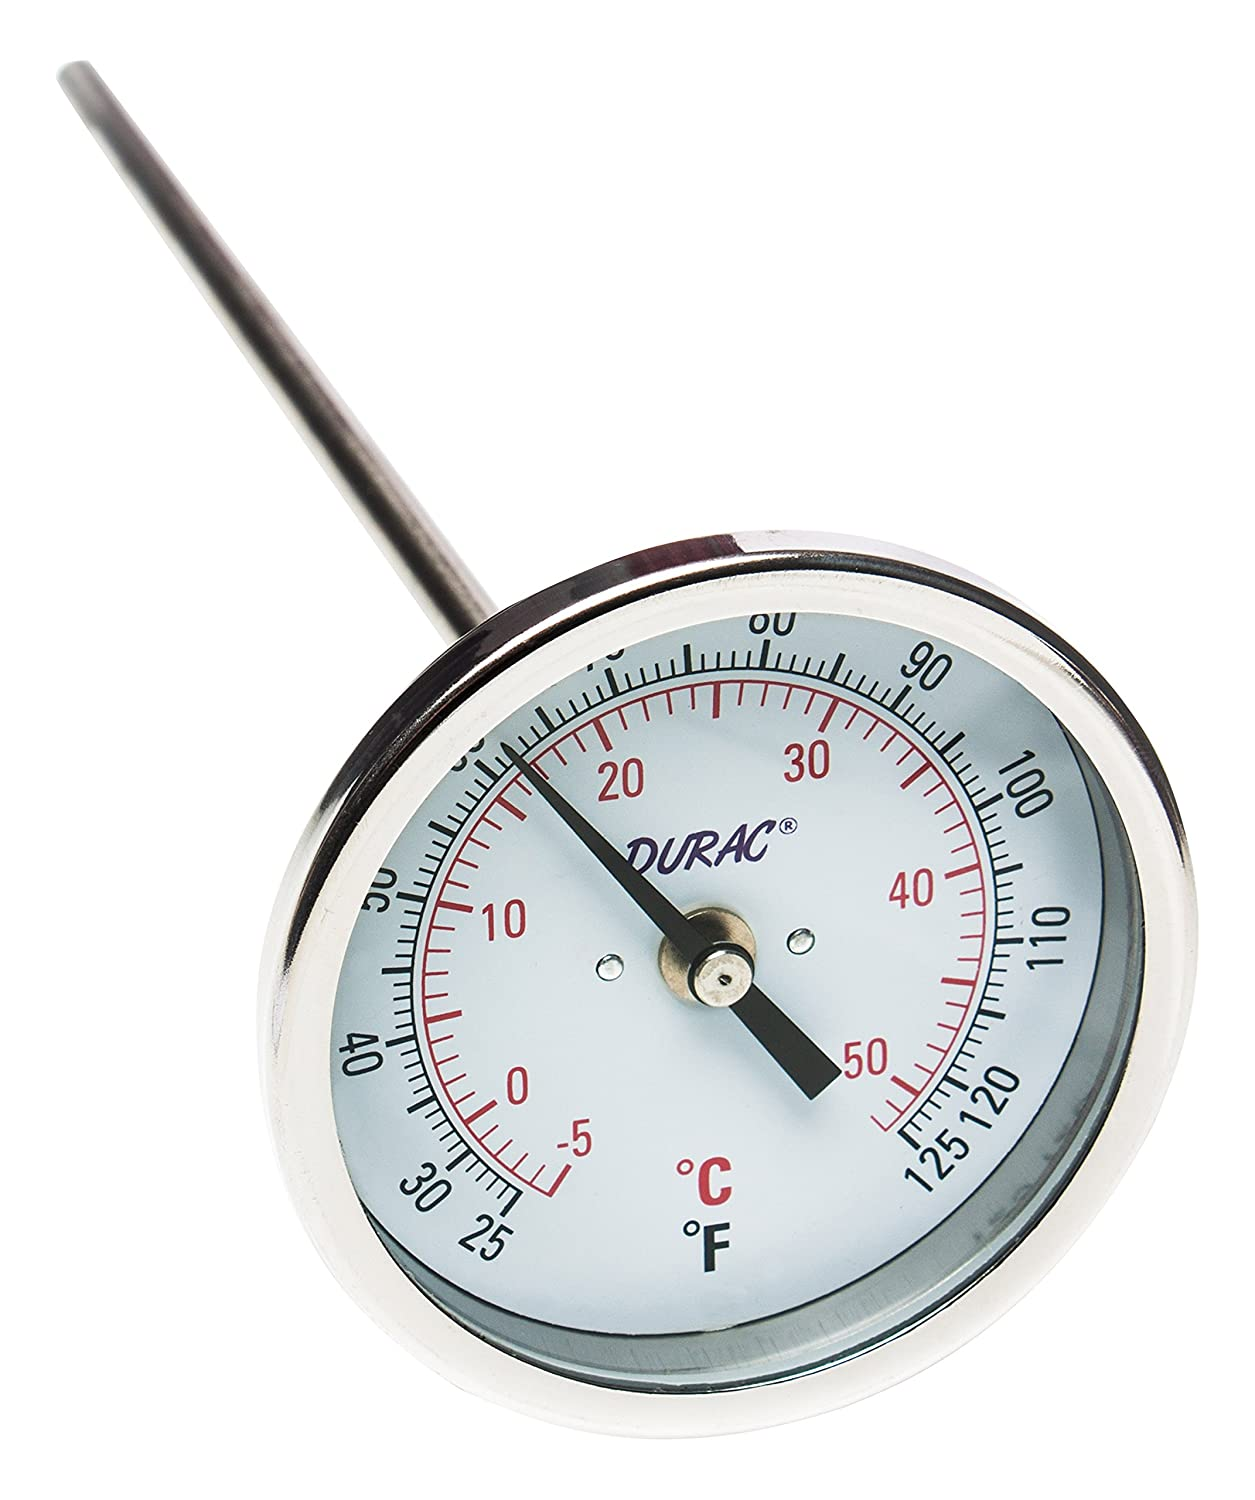 75mm Dial NPT Threaded Connection 1//2 in Bel-Art Products H-B DURAC Bi-Metallic Dial Thermometer; 0 to 50C 25 to 125F B61310-9000